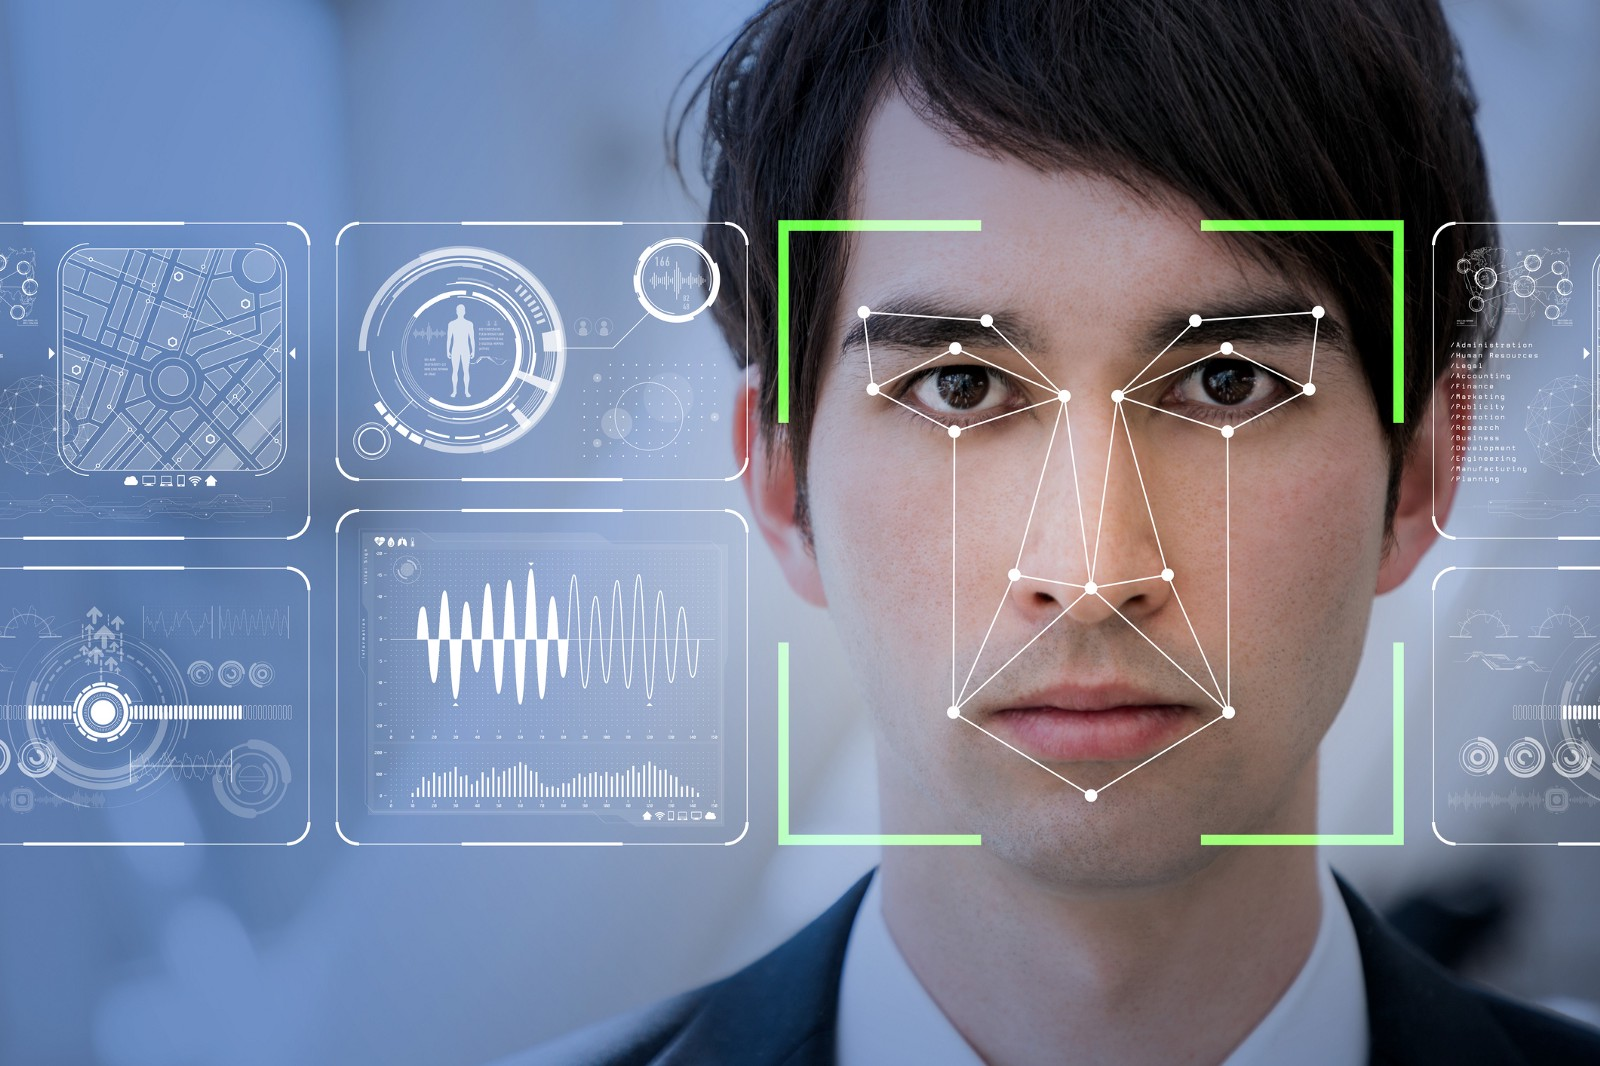 Facial recognition using OpenCV in Java